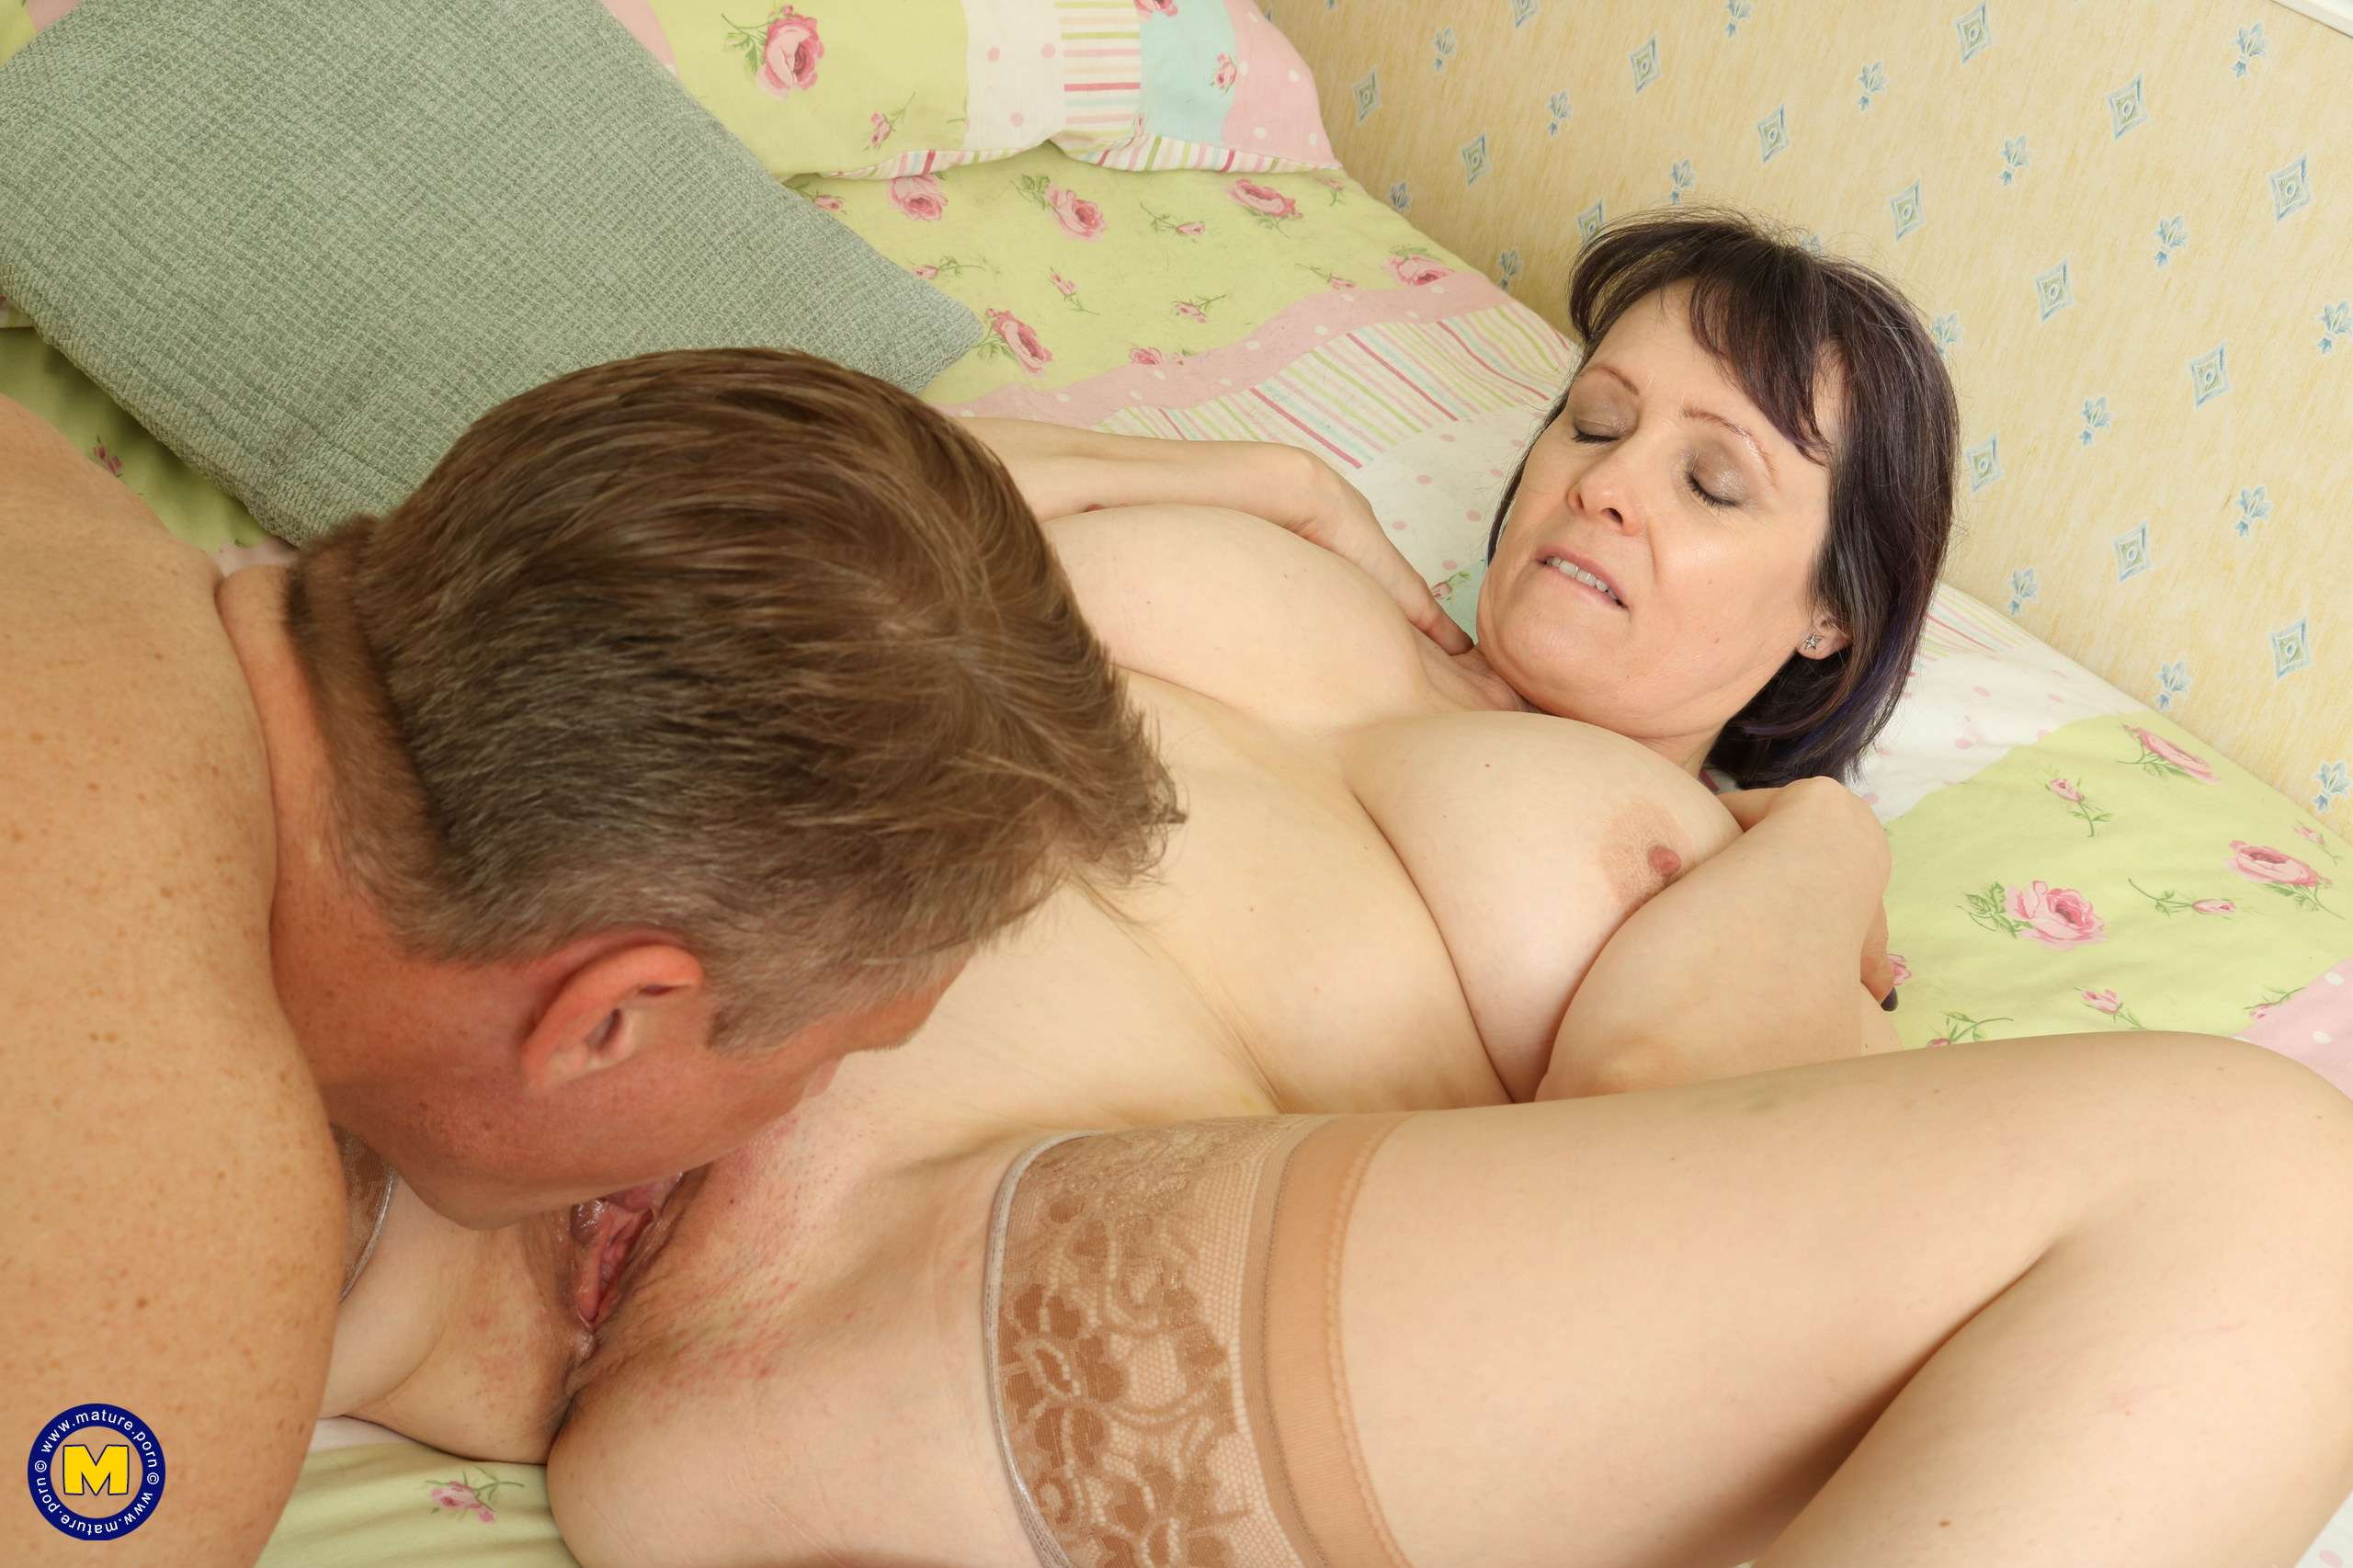 Big breasted mature Tigger loves to fool around with her man